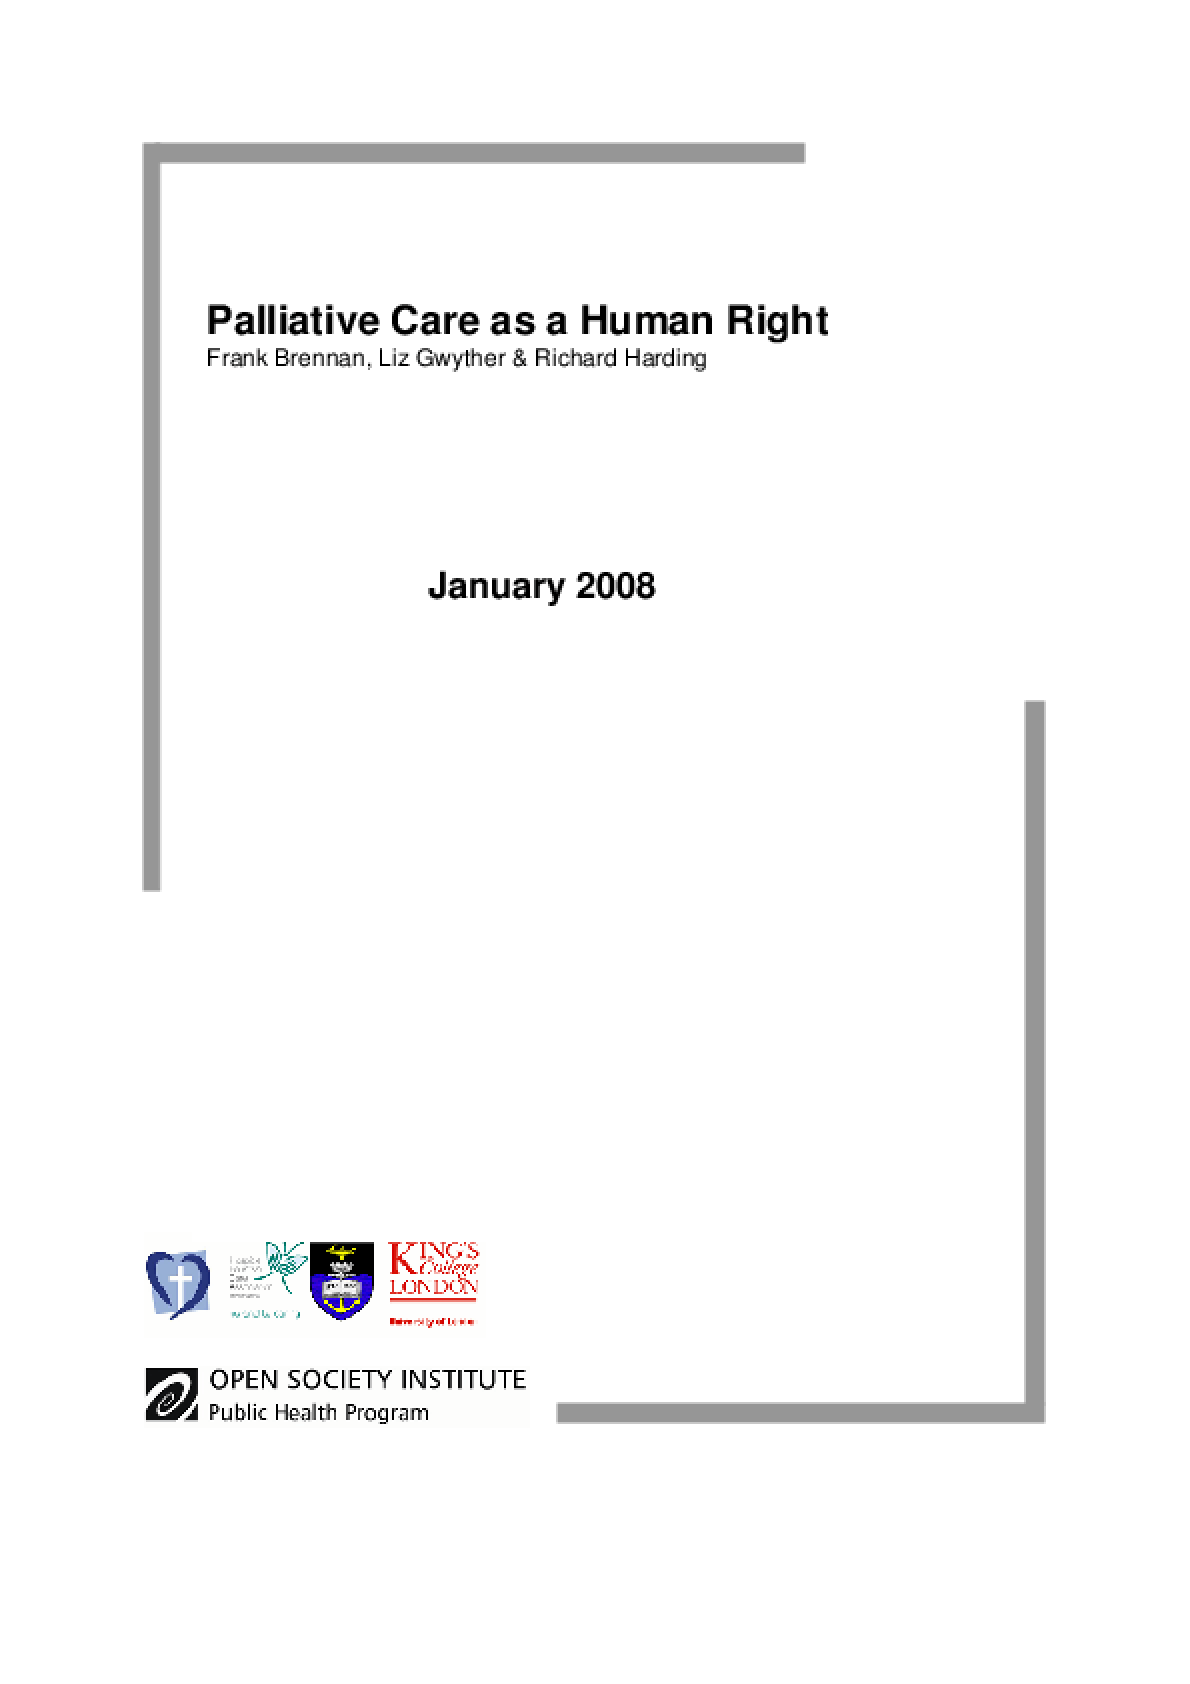 Palliative Care as a Human Right